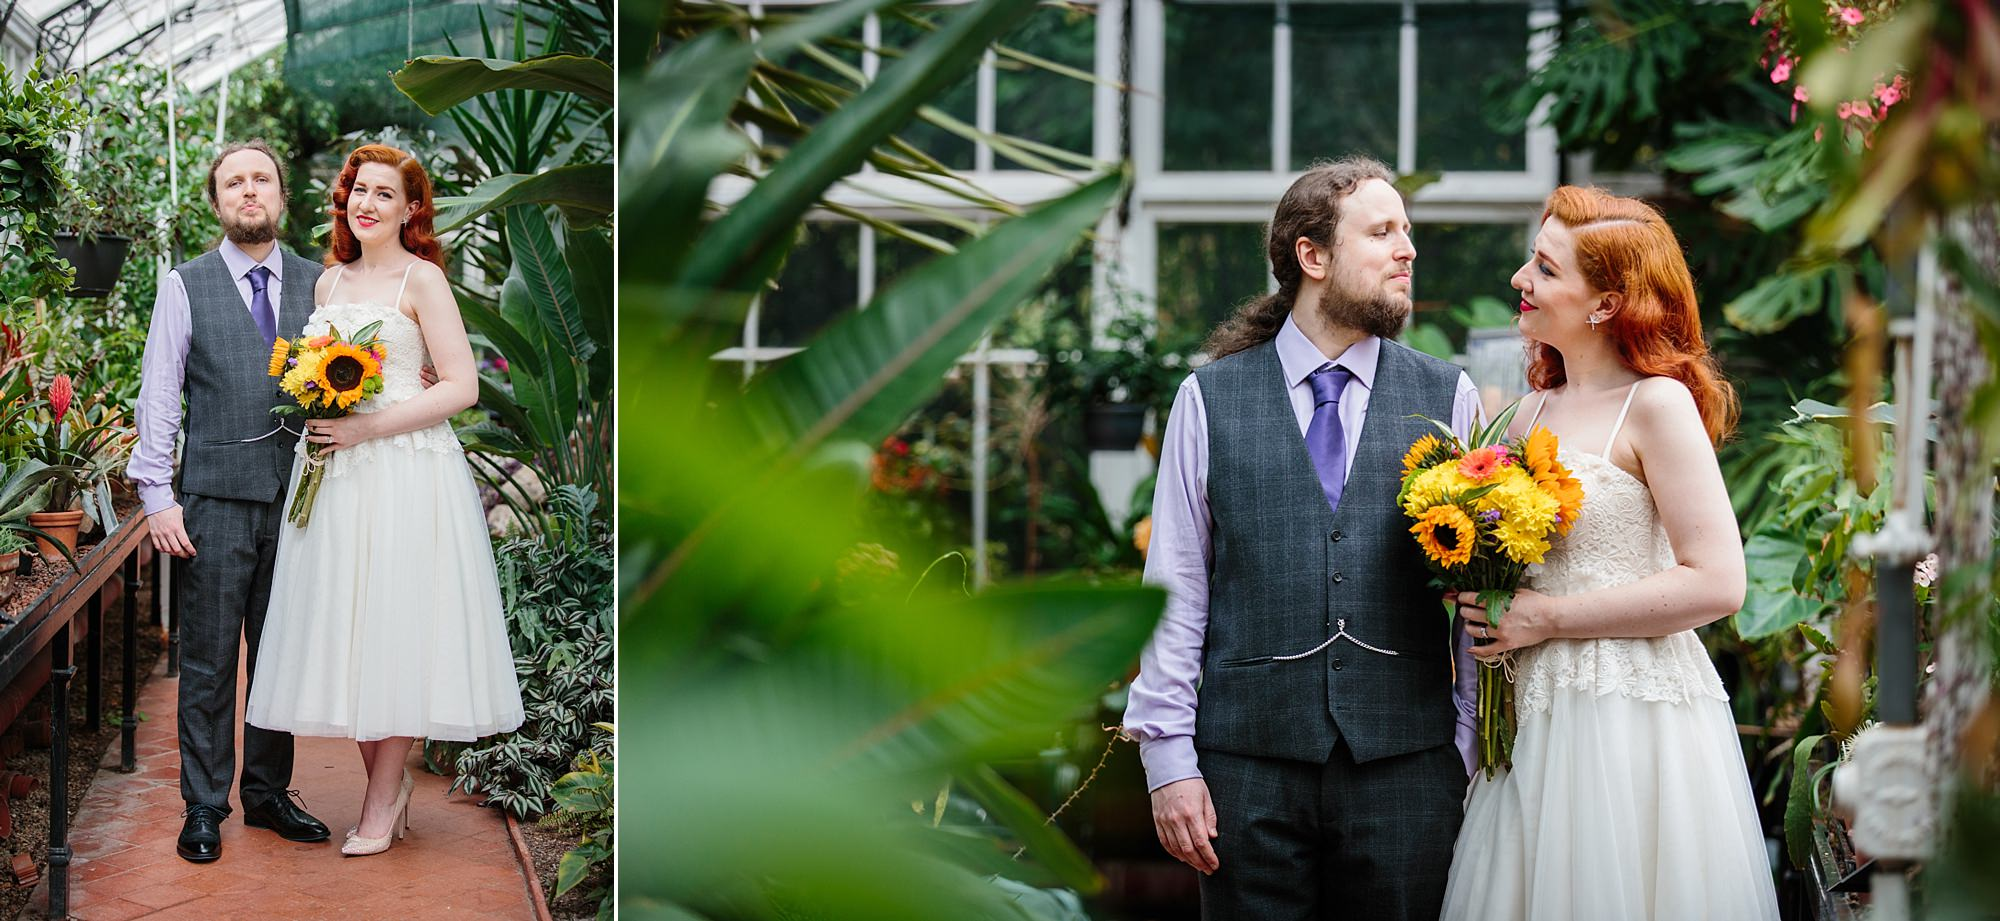 tropical wedding shoot portrait of bride and groom amongst tropical leaves